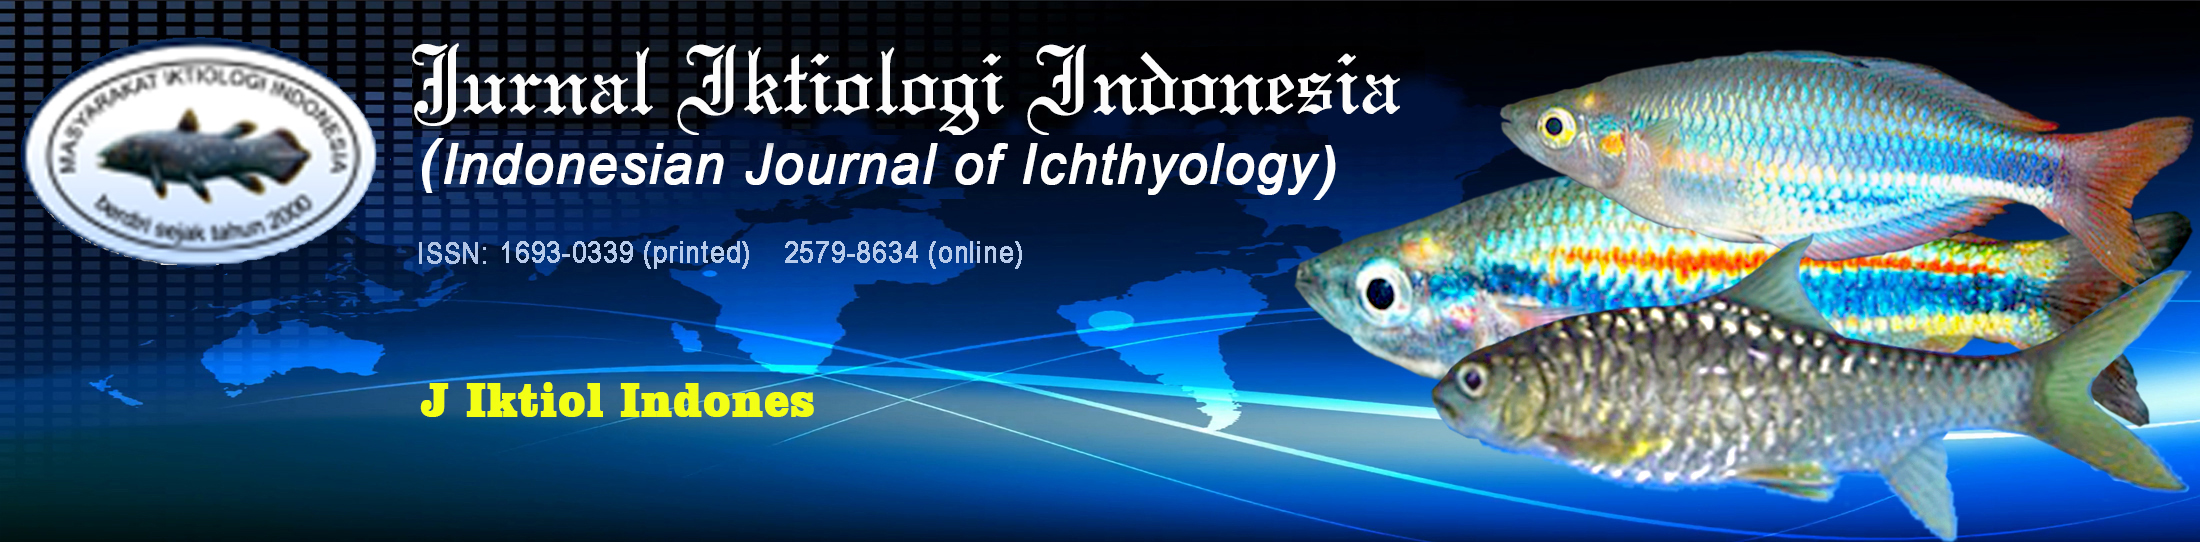 Jurnal Iktiologi Indonesia